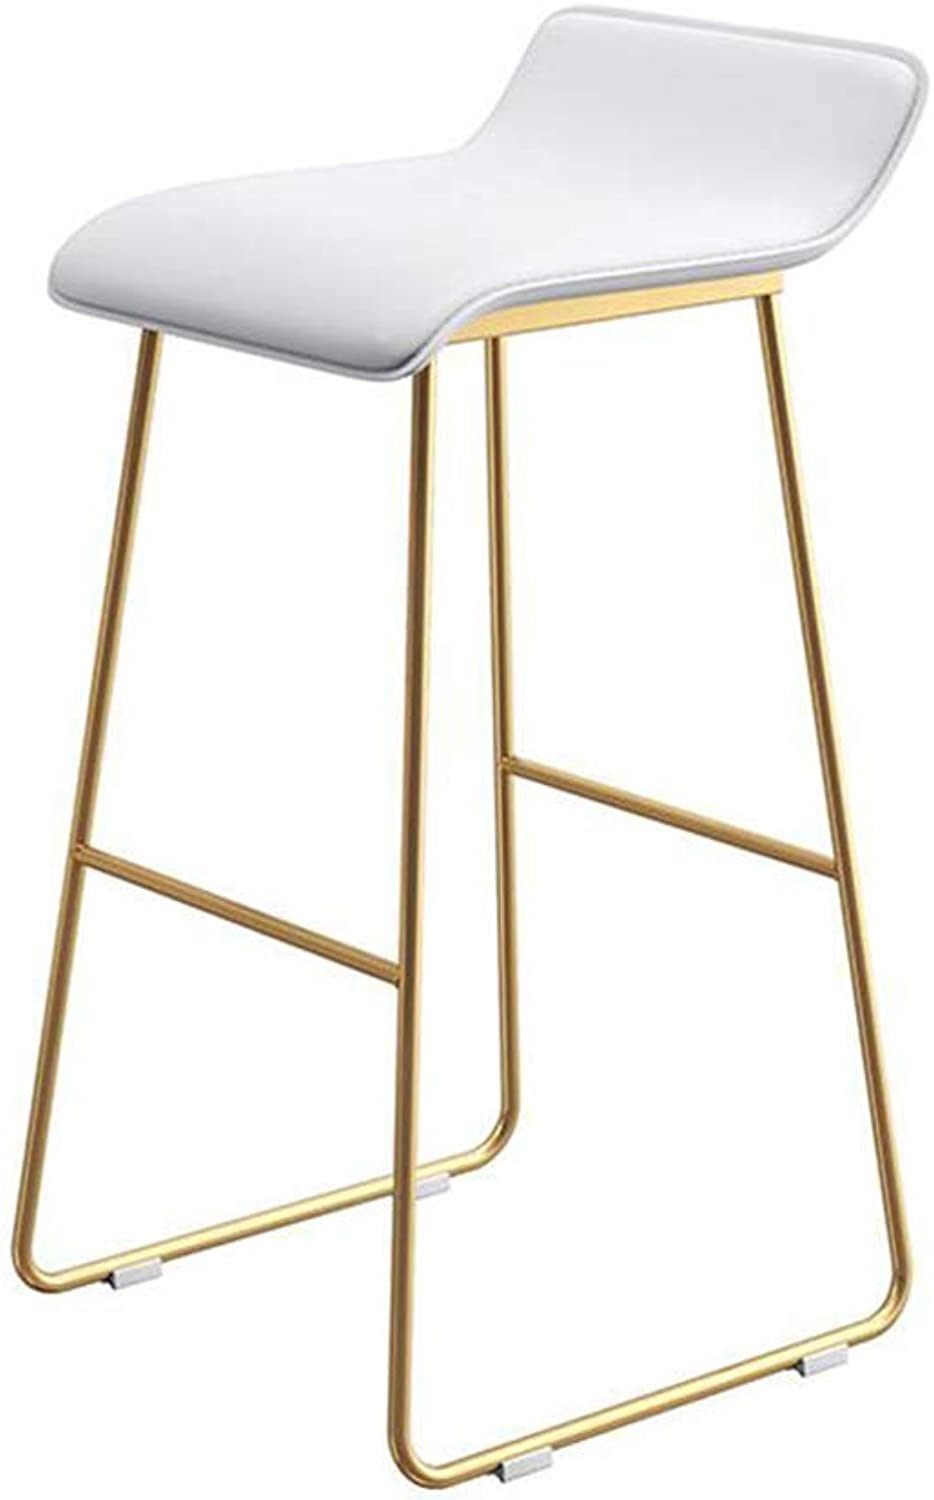 LLYU Nordic bar Stool Leisure Home Kitchen Breakfast Stool Modern Minimalist Creative Wrought Iron bar Chair Coffee high Stool (color   White, Size   75CM)